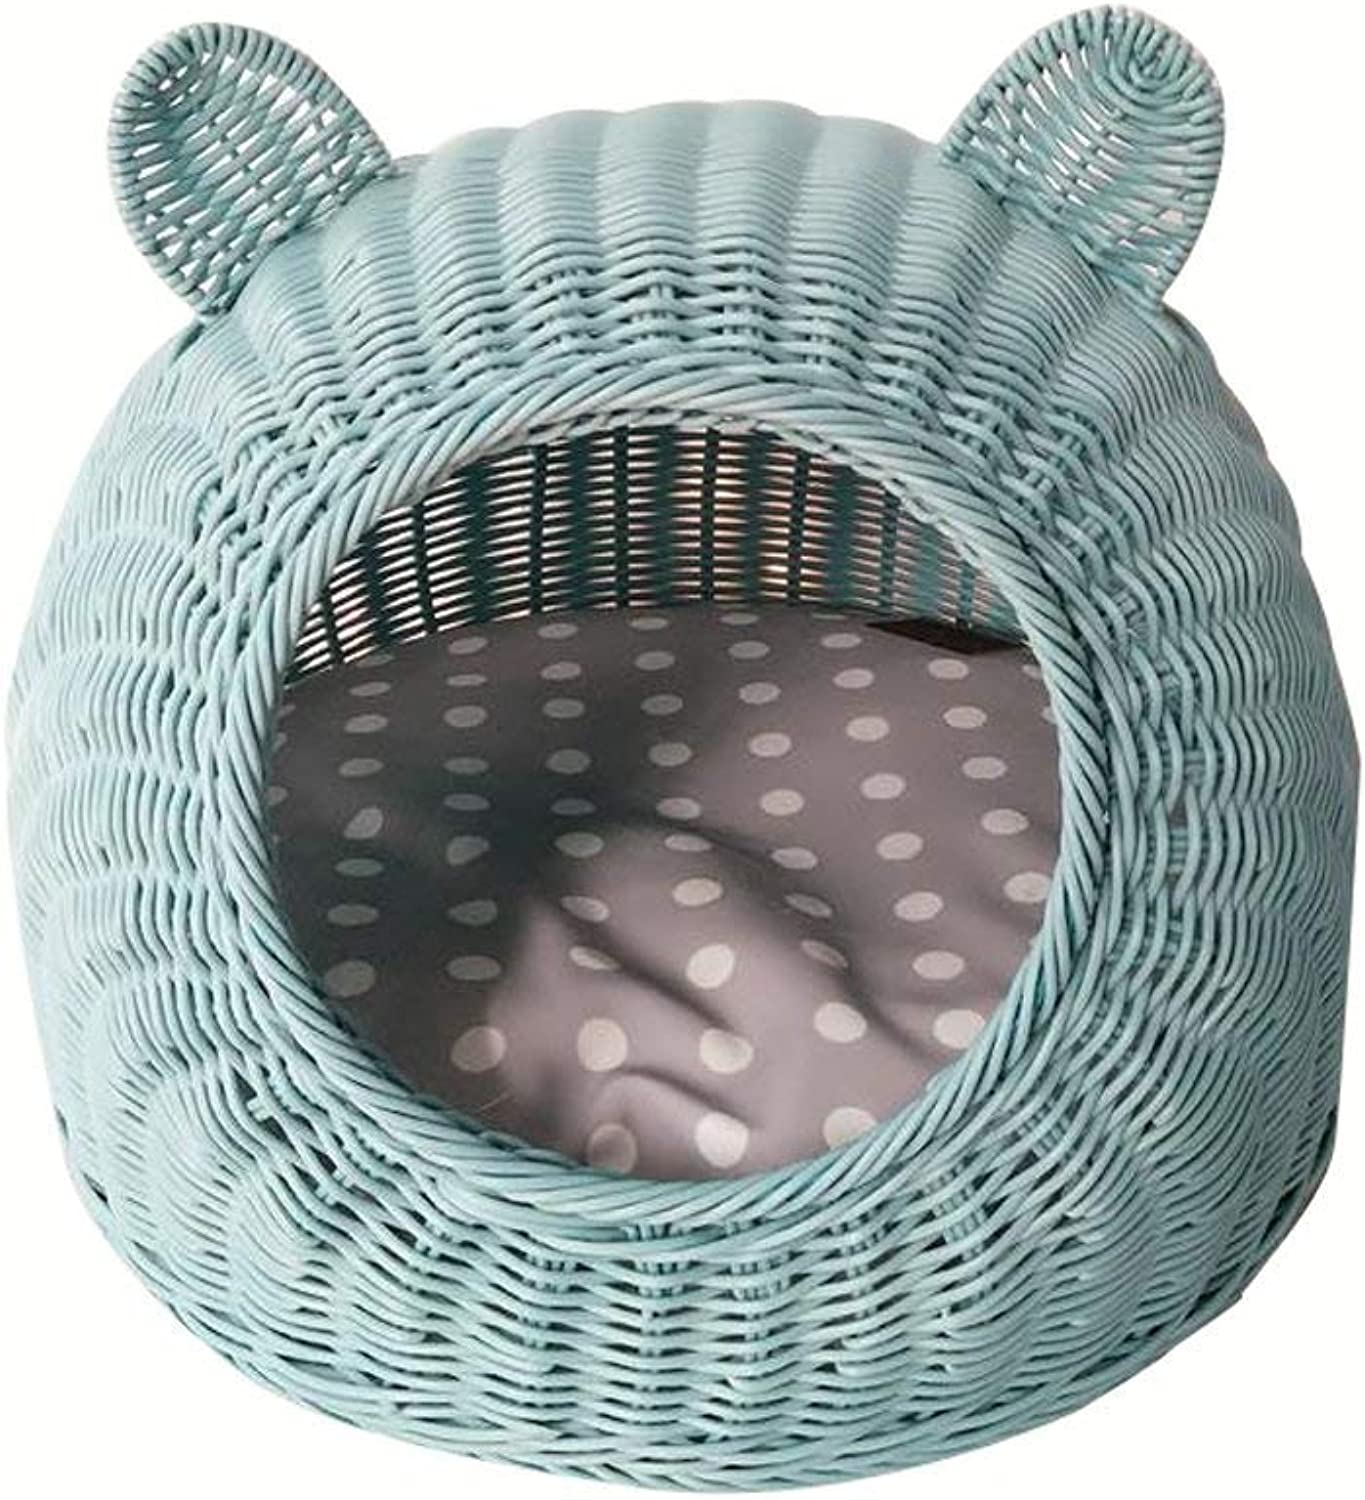 YQSMYSW Pet Bed Closed Rattan Cat House with Cushion Easy to Clean Young Dog Puppy Nest Hand Made Cat Nest Pet Supplies  &